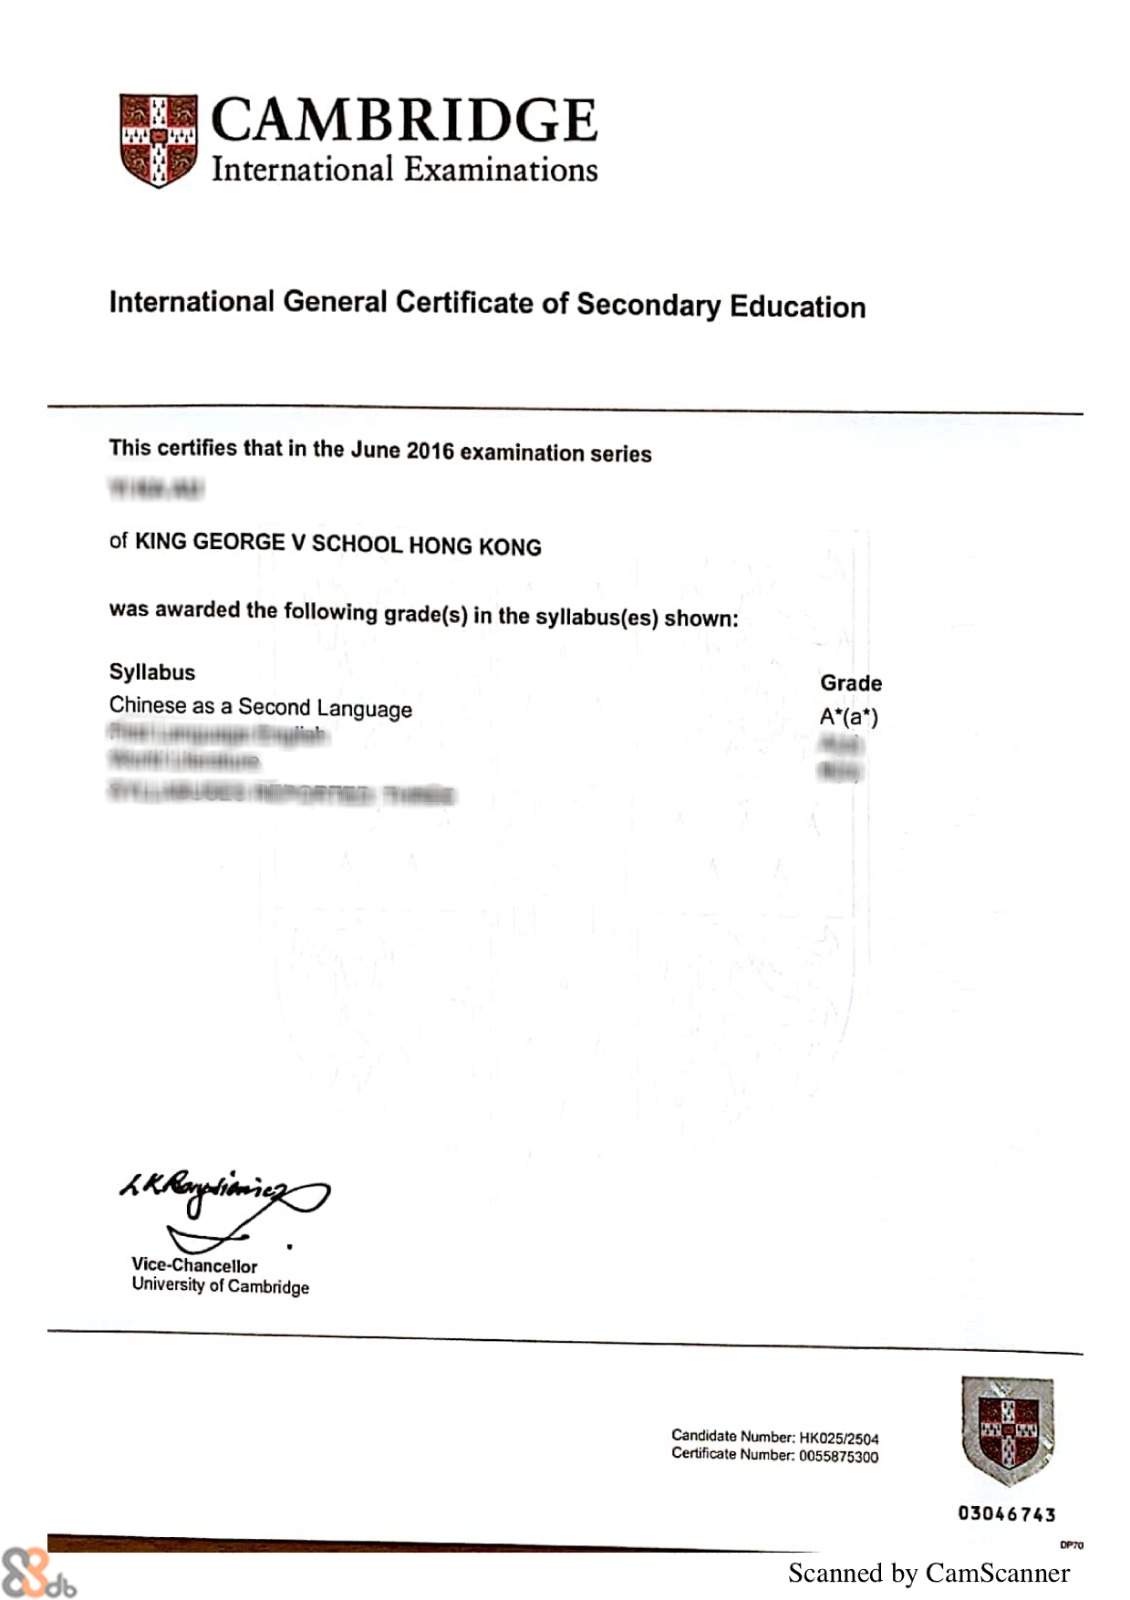 CAMBRIDGE International Examinations International General Certificate of Secondary Education This certifies that in the June 2016 examination series of KING GEORGE V SCHOOL HONG KONG was awarded the following grade(s) in the syllabus(es) shown: Syllabus Chinese as a Second Language Grade Vice-Chancellor University of Cambridge Candidate Number: HK025/2504 Certificate Number: 0055875300 03046743 OP70 Scanned by CamScanne  Text,Font,Line,